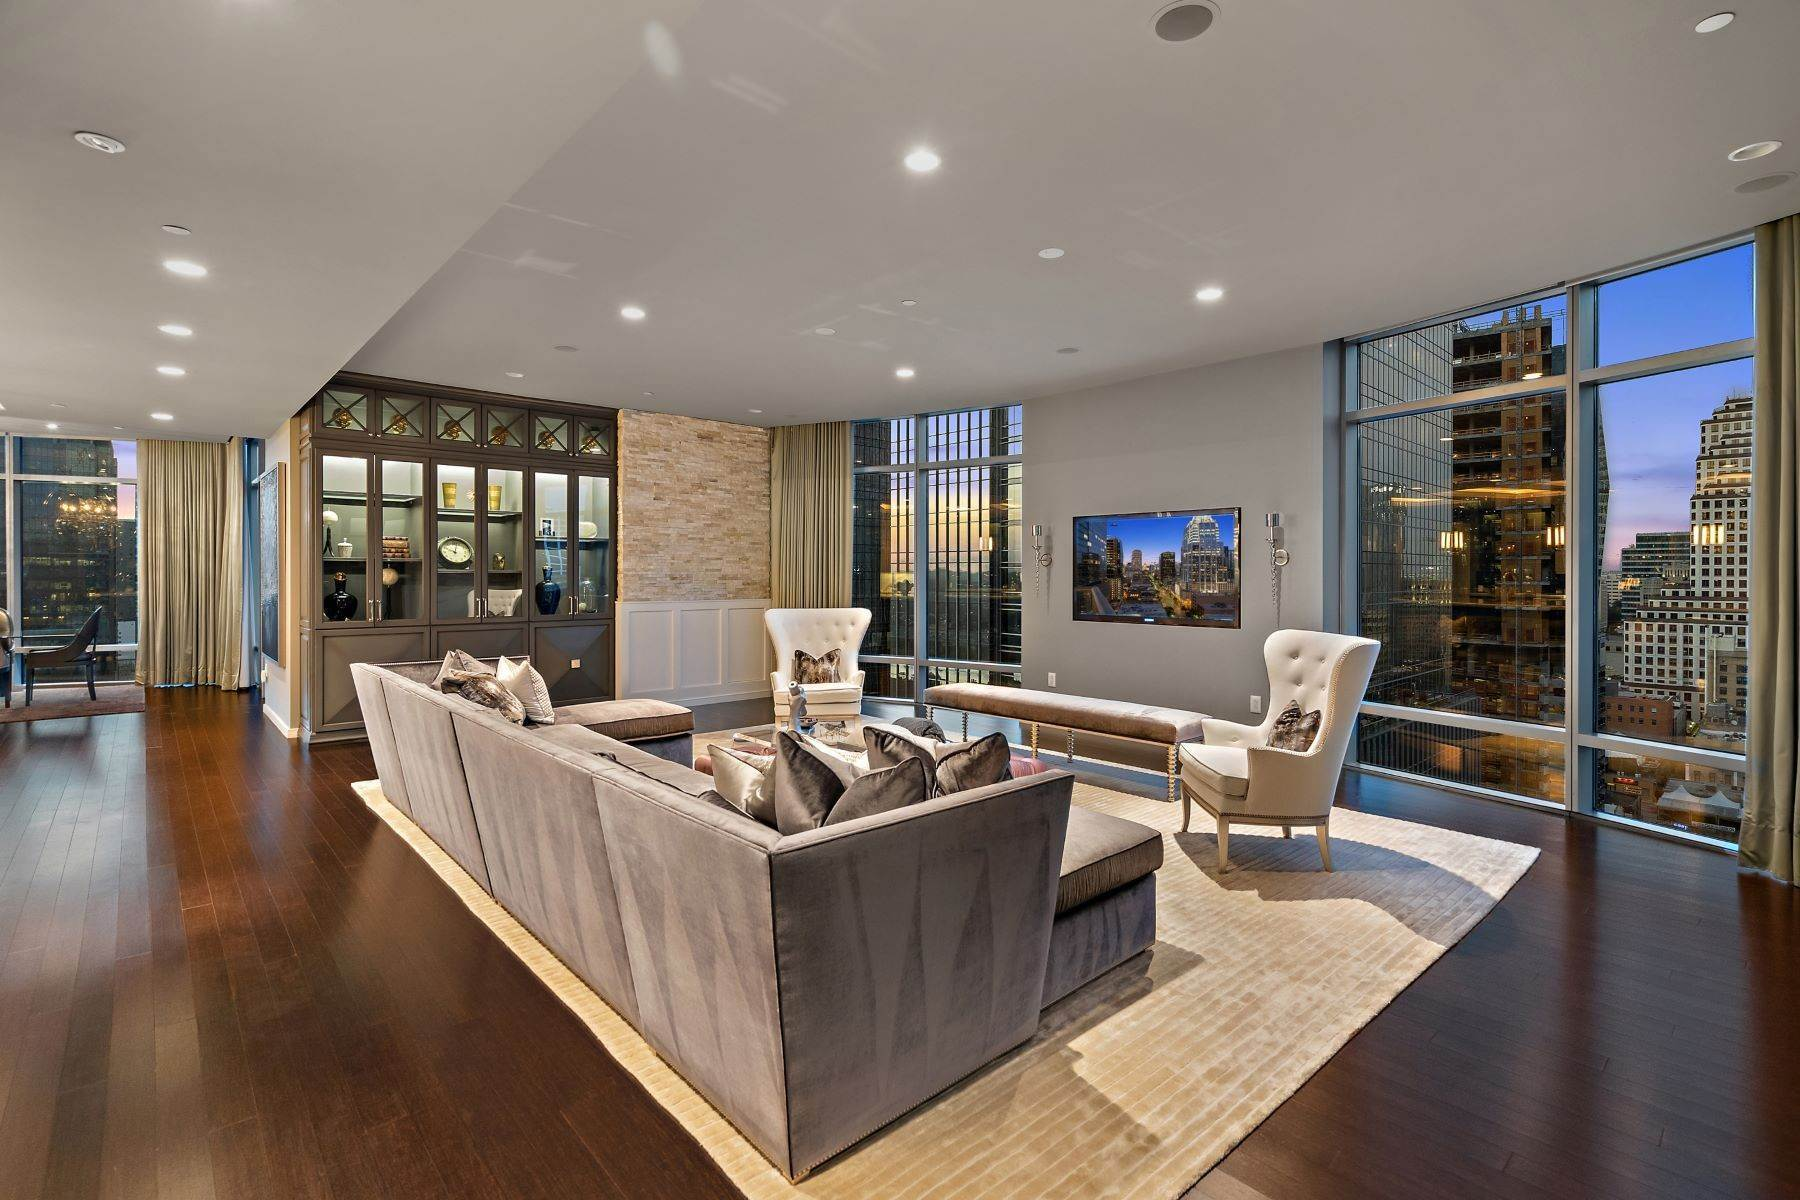 Property for Sale at Open Concept Floor Plan with 300 Degree Views 200 Congress Ave Unit 19DE Austin, Texas 78701 United States